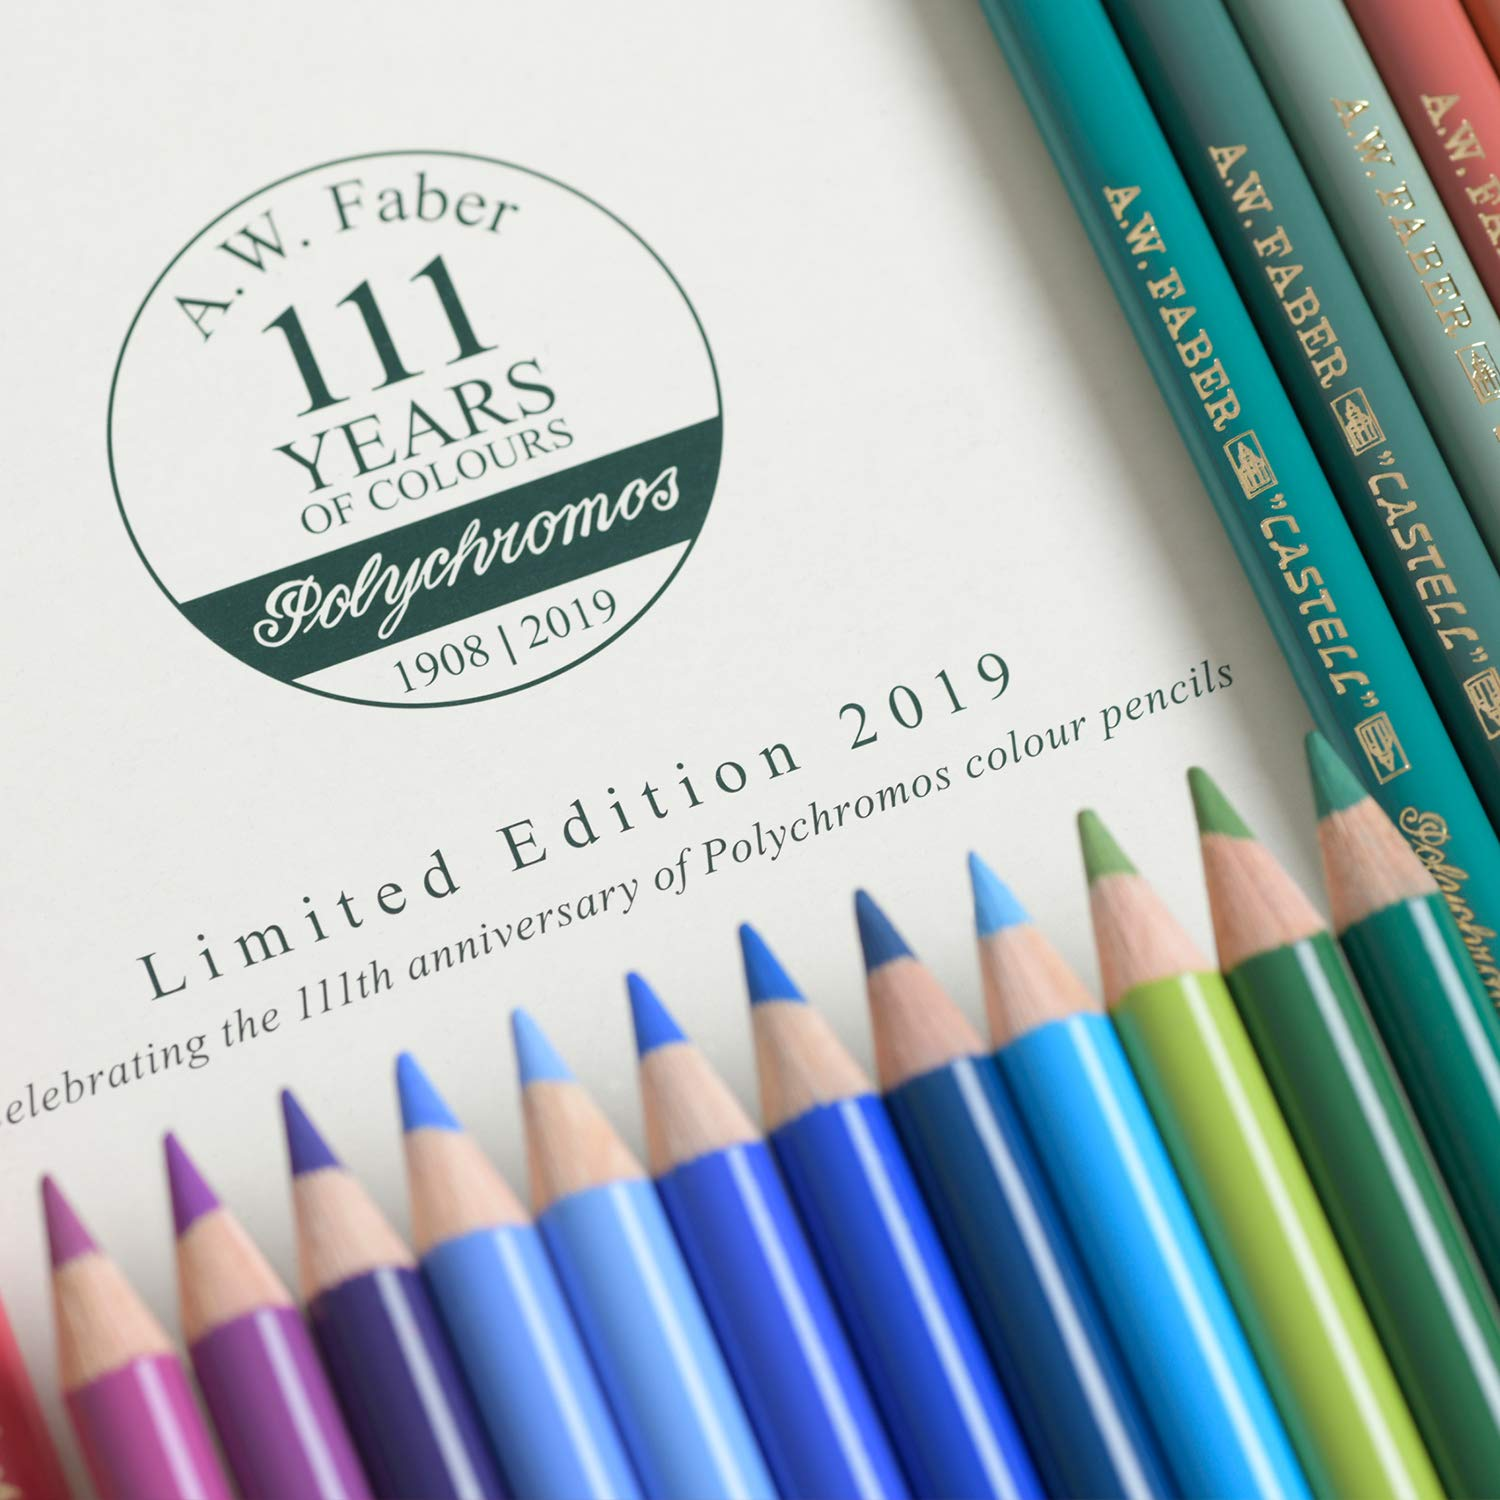 Amazon.com: Faber-Castell 111th Anniversary Parent 24 ...